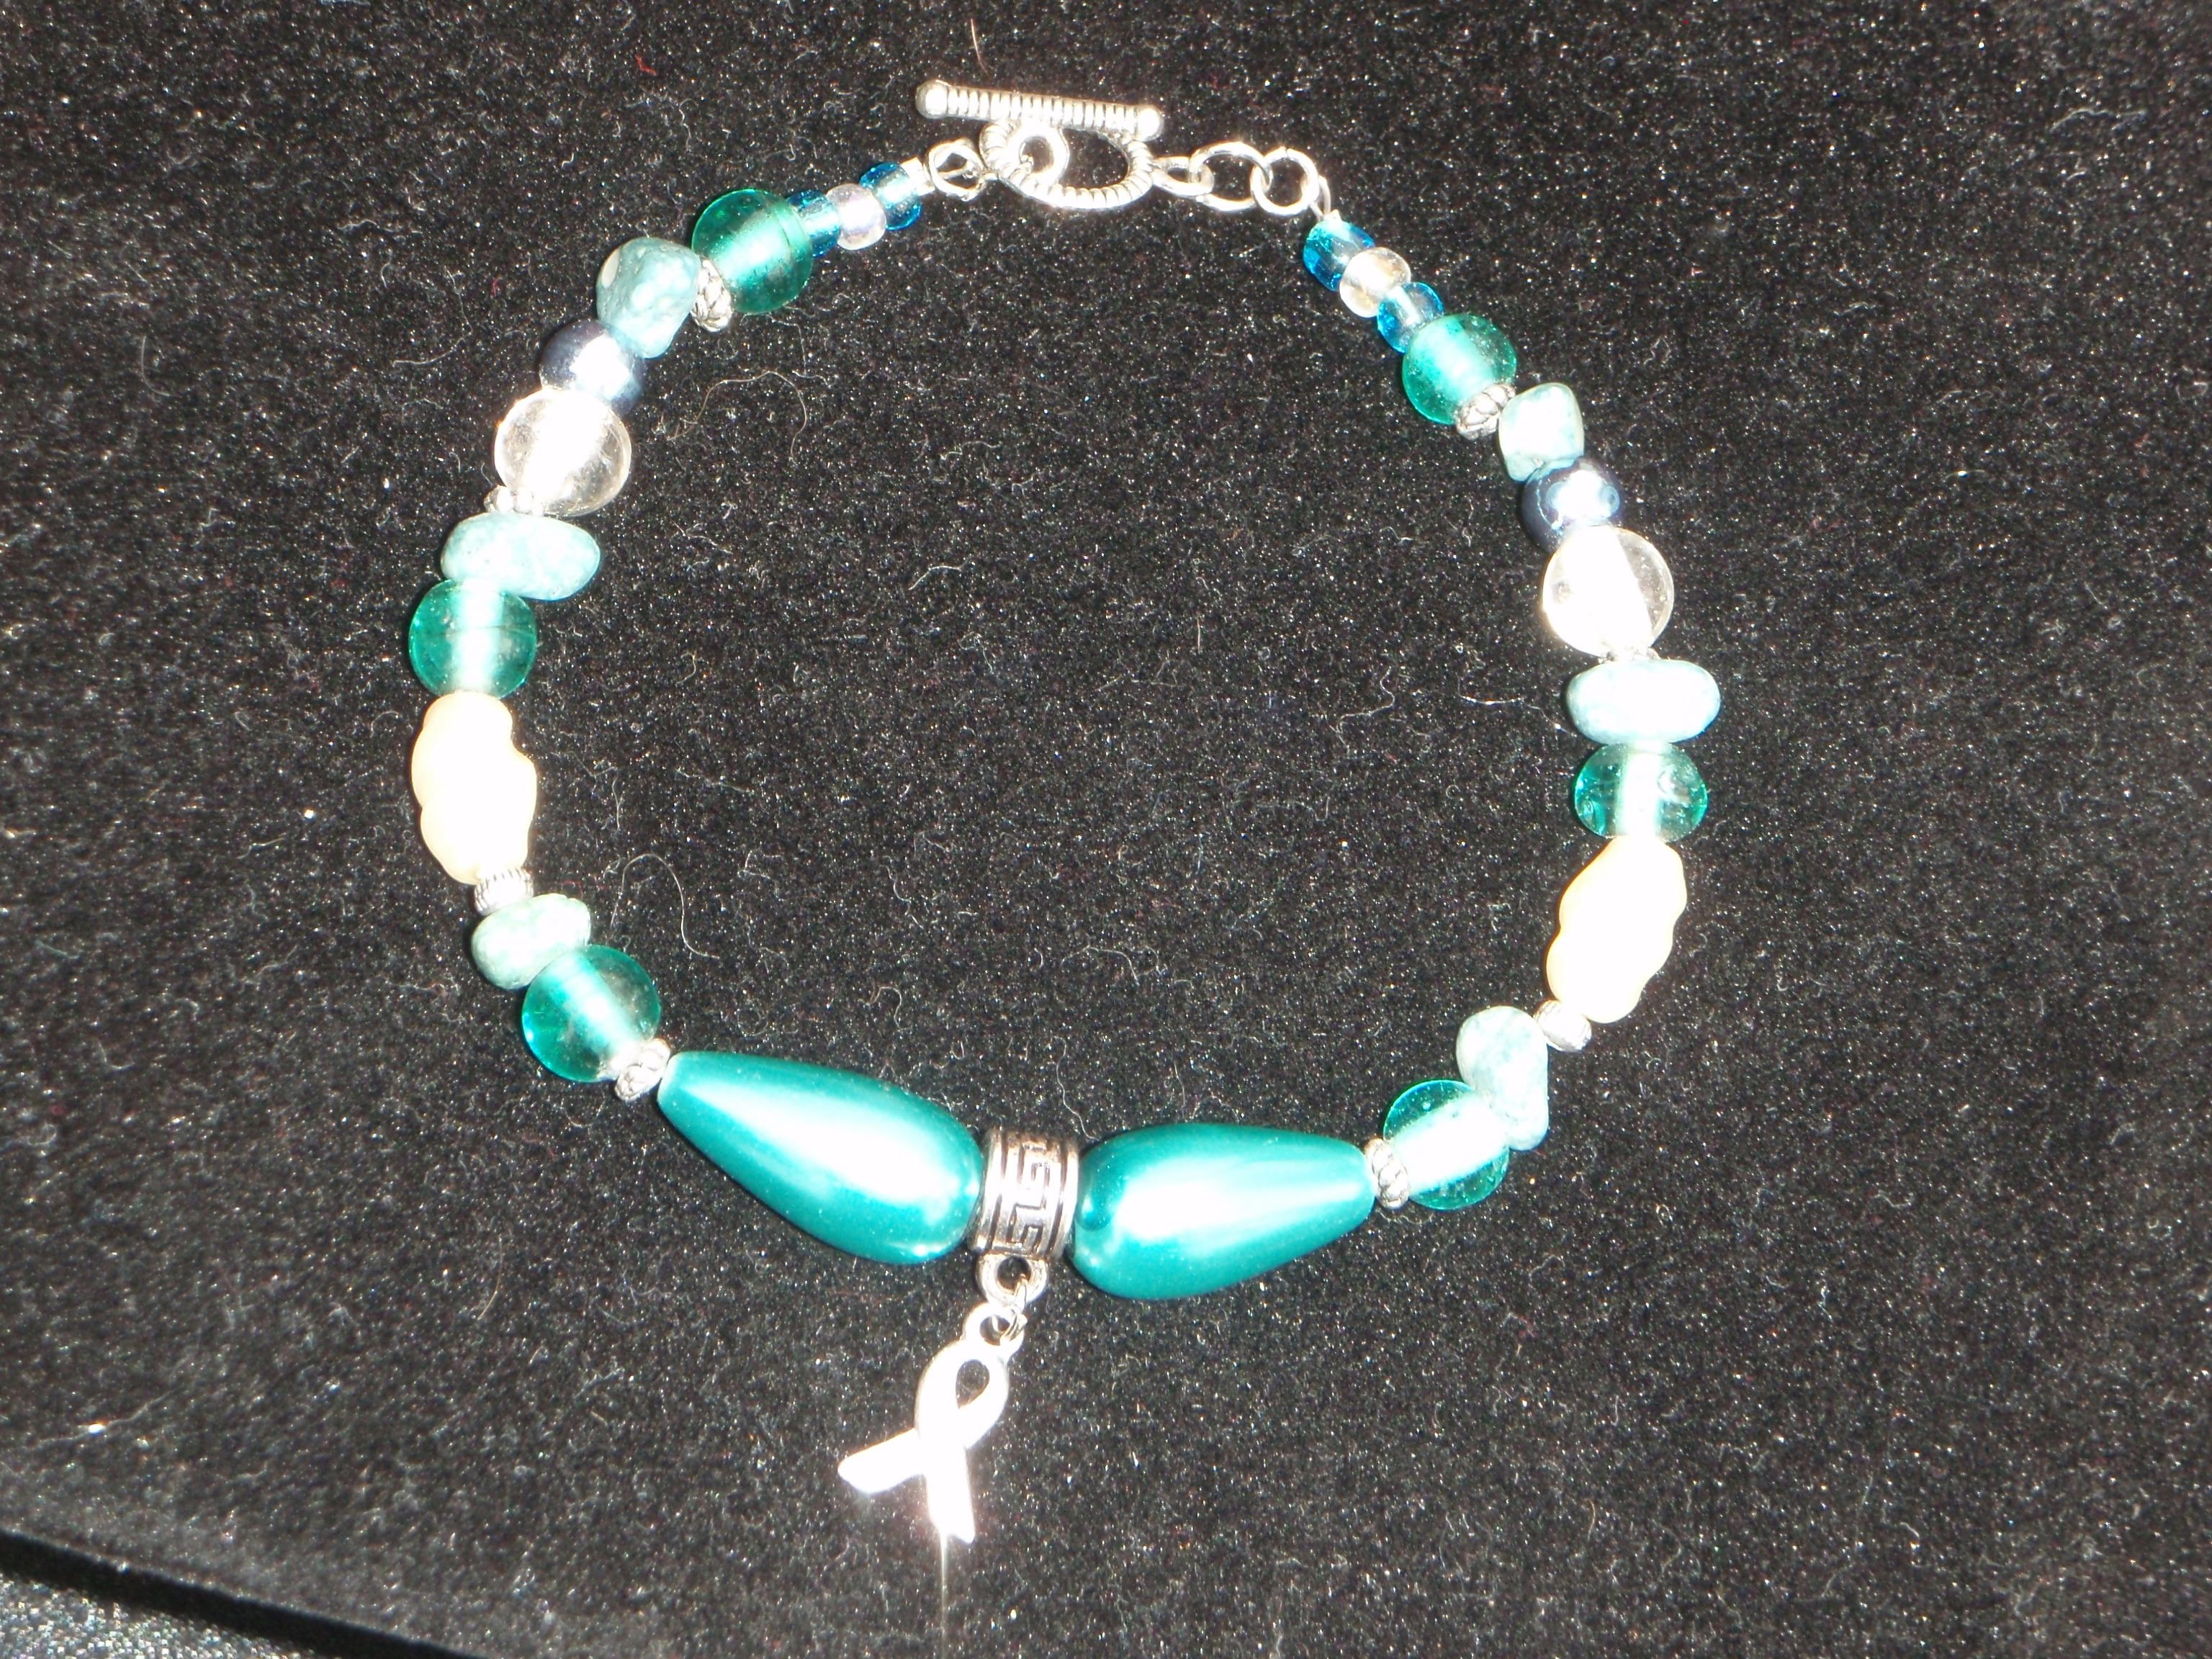 kidney pos disease bracelet x anti bullying polycystic ovarian fragile scleroderma ocd cancer pin awareness